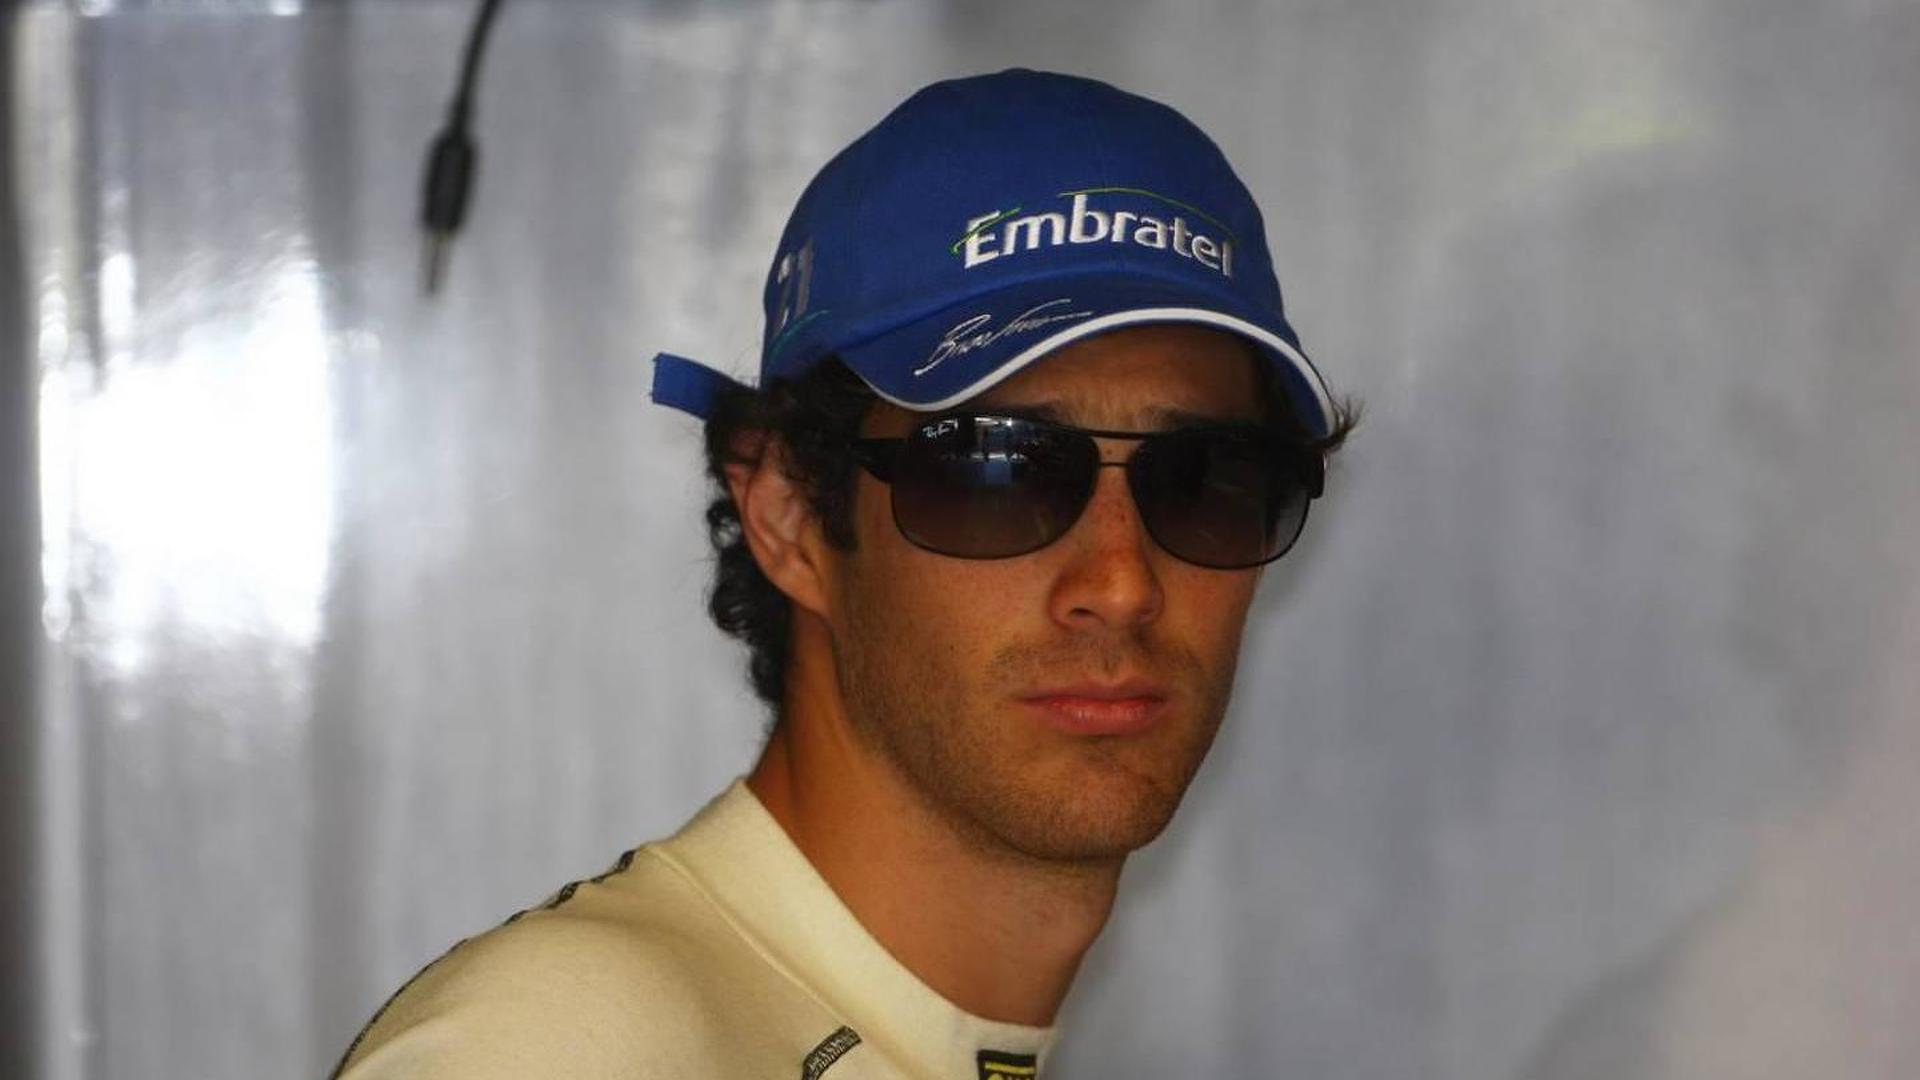 Senna expecting to keep HRT seat for now